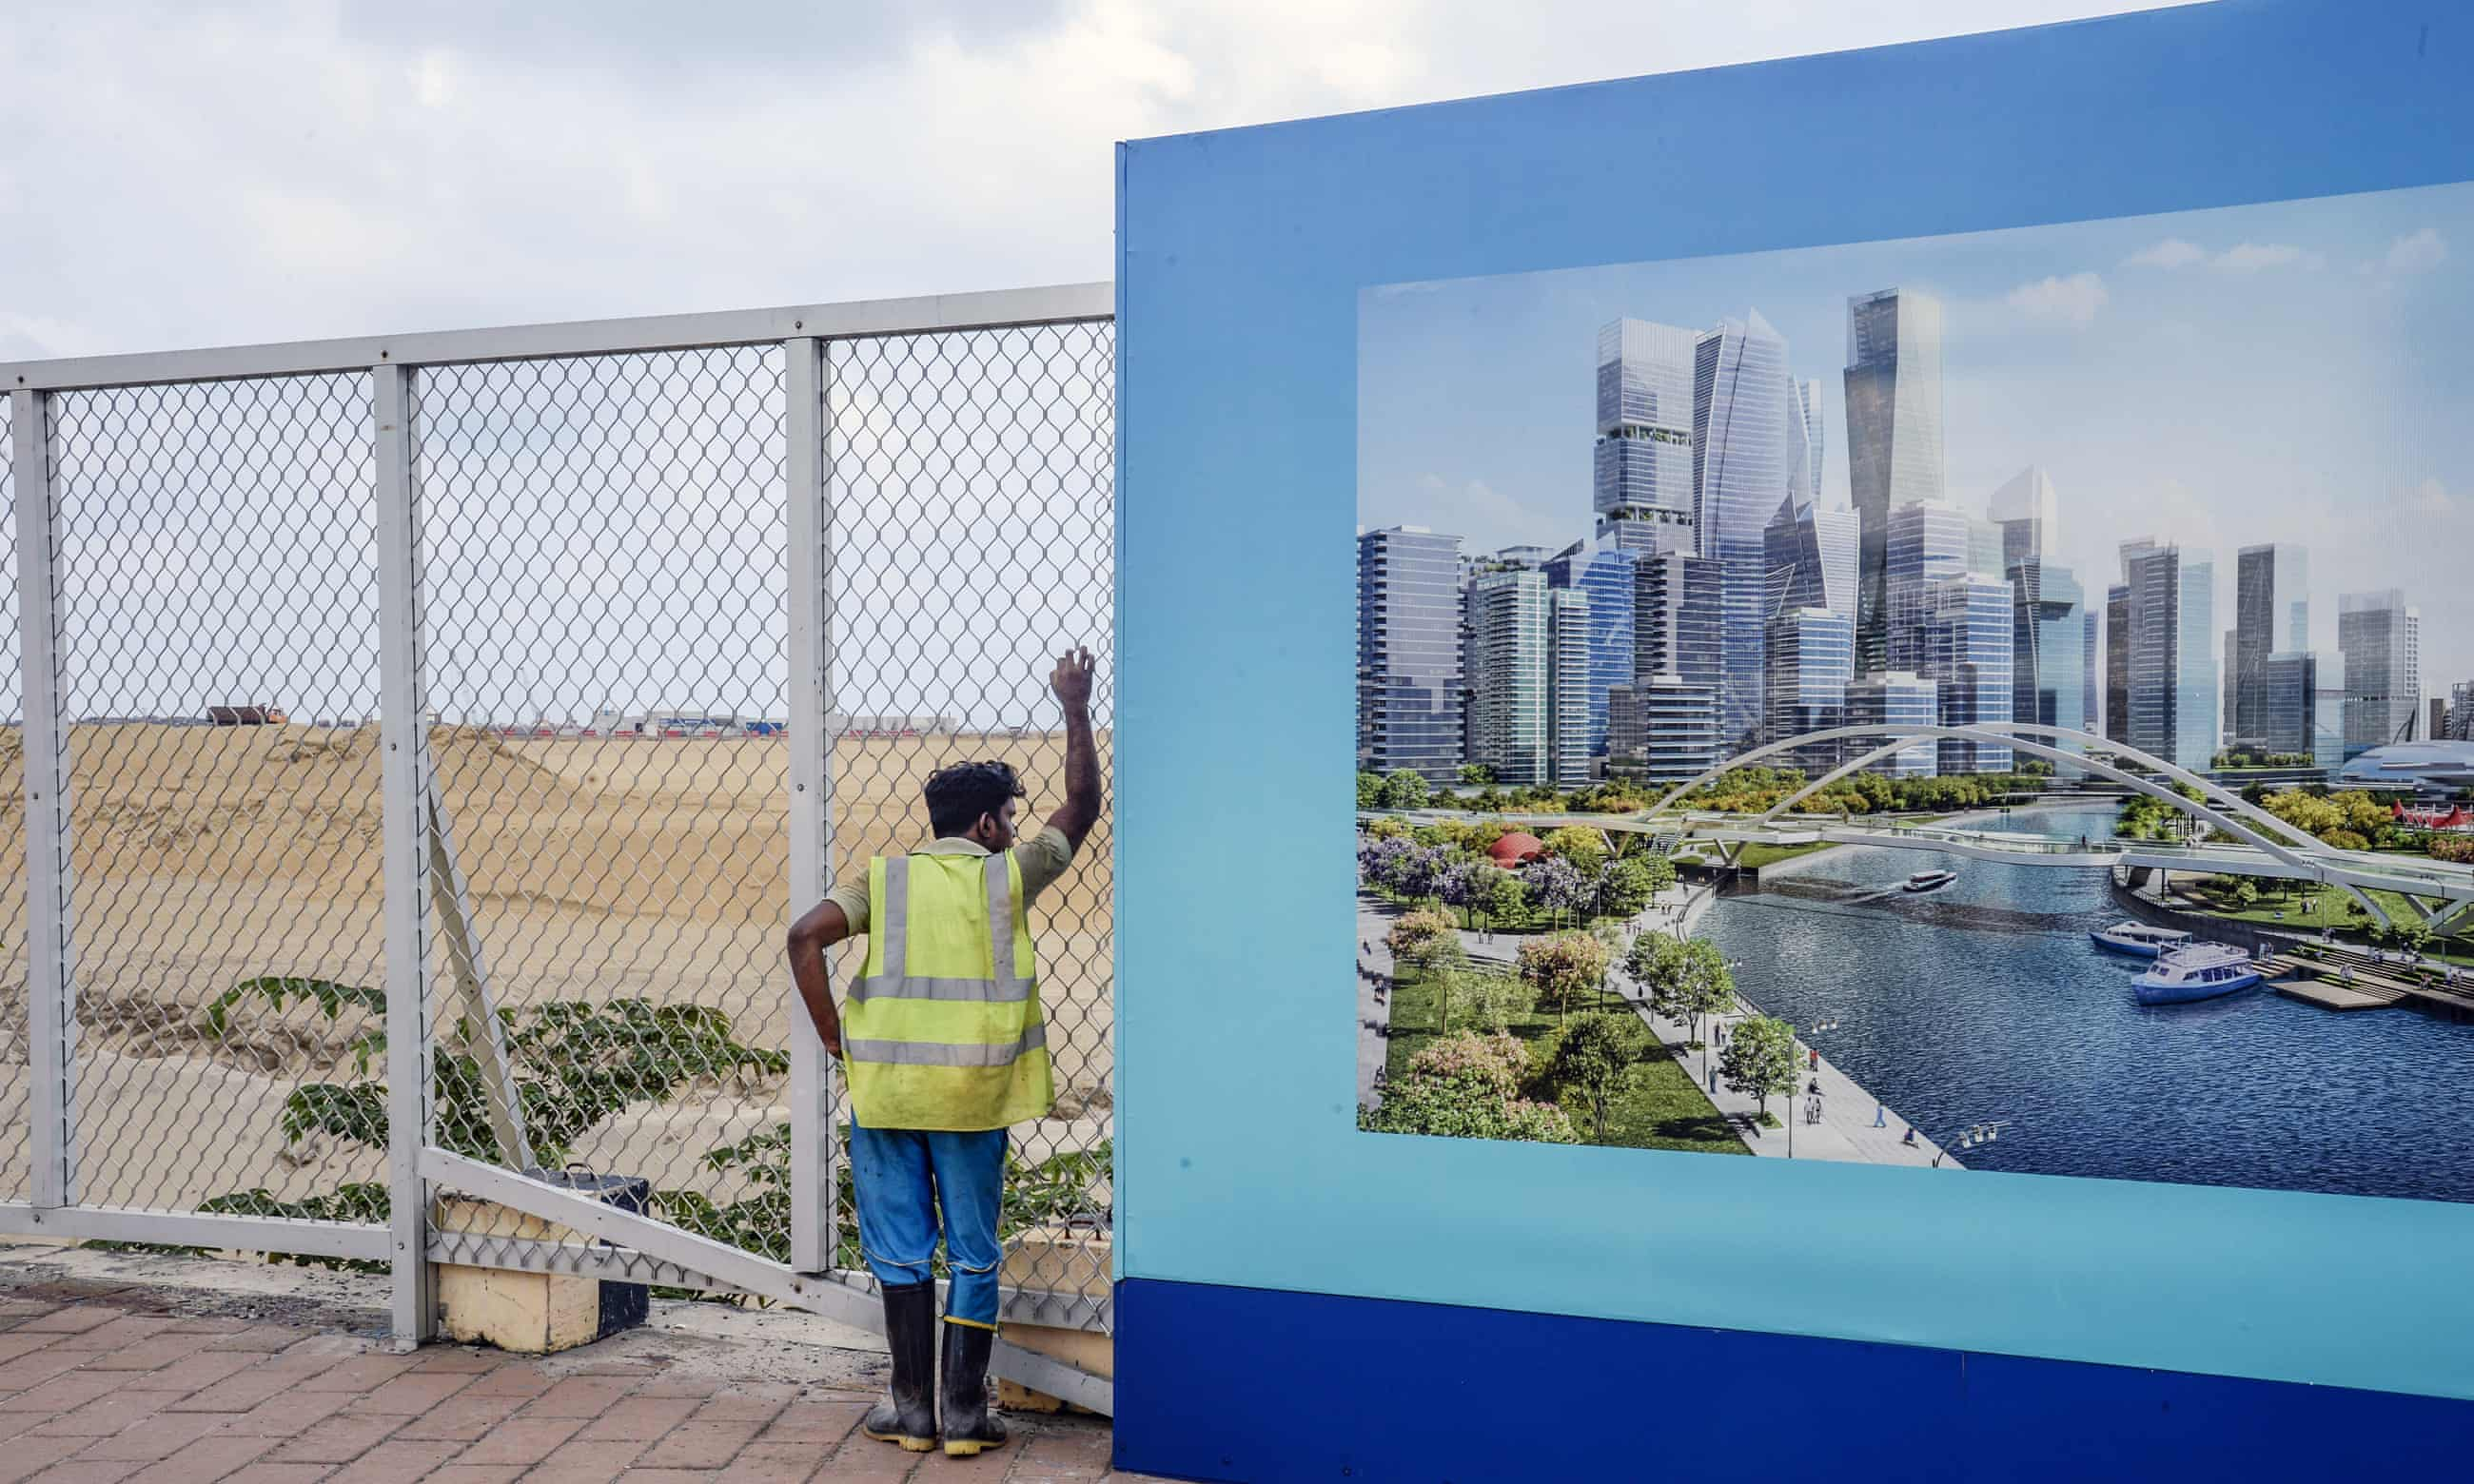 Sri Lanka's 'new Dubai': will Chinese-built city suck the life out of Colombo?